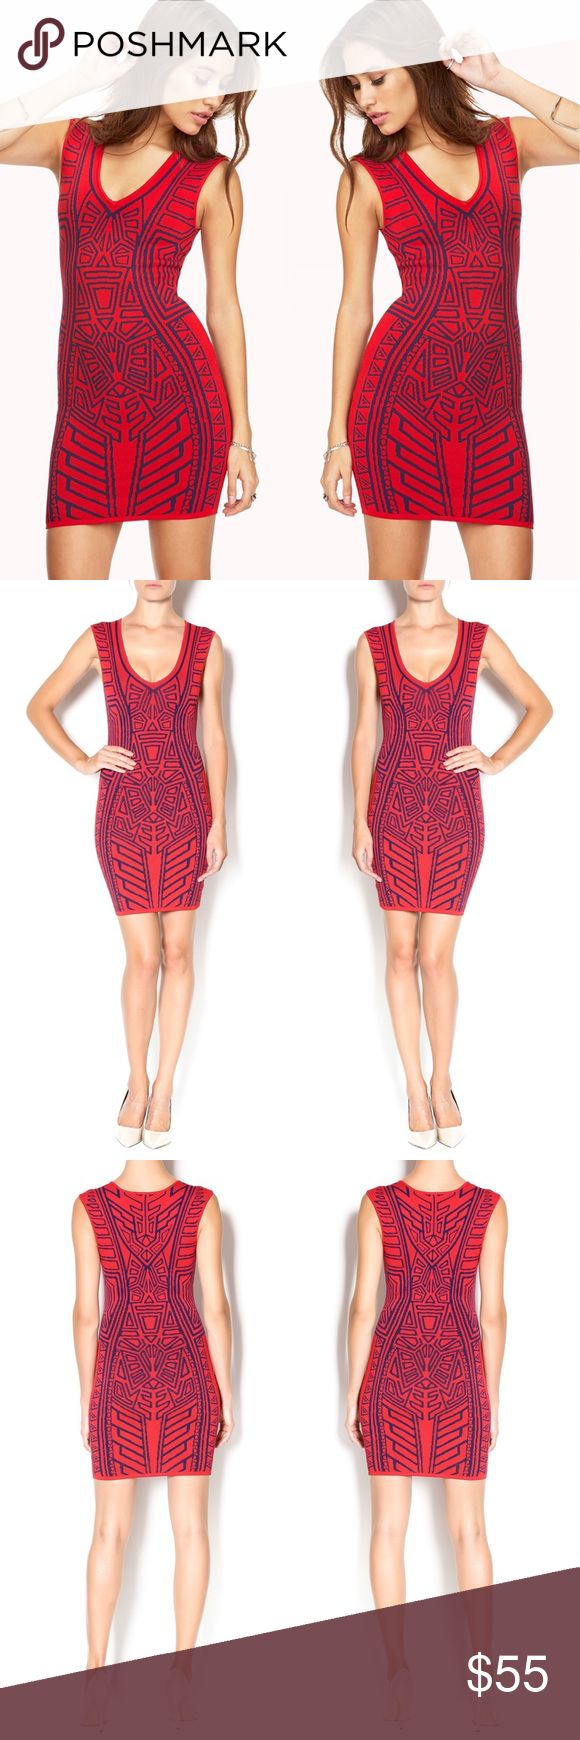 NWOT Ethnic Print Dress Red ethnic printed dress with a black design throughout and a bodycon fit. Stunning statement dress! Wear this dress with lace up heels and a sleek clutch.   Fiber Content: rayon, nylon Forever 21 Dresses Mini